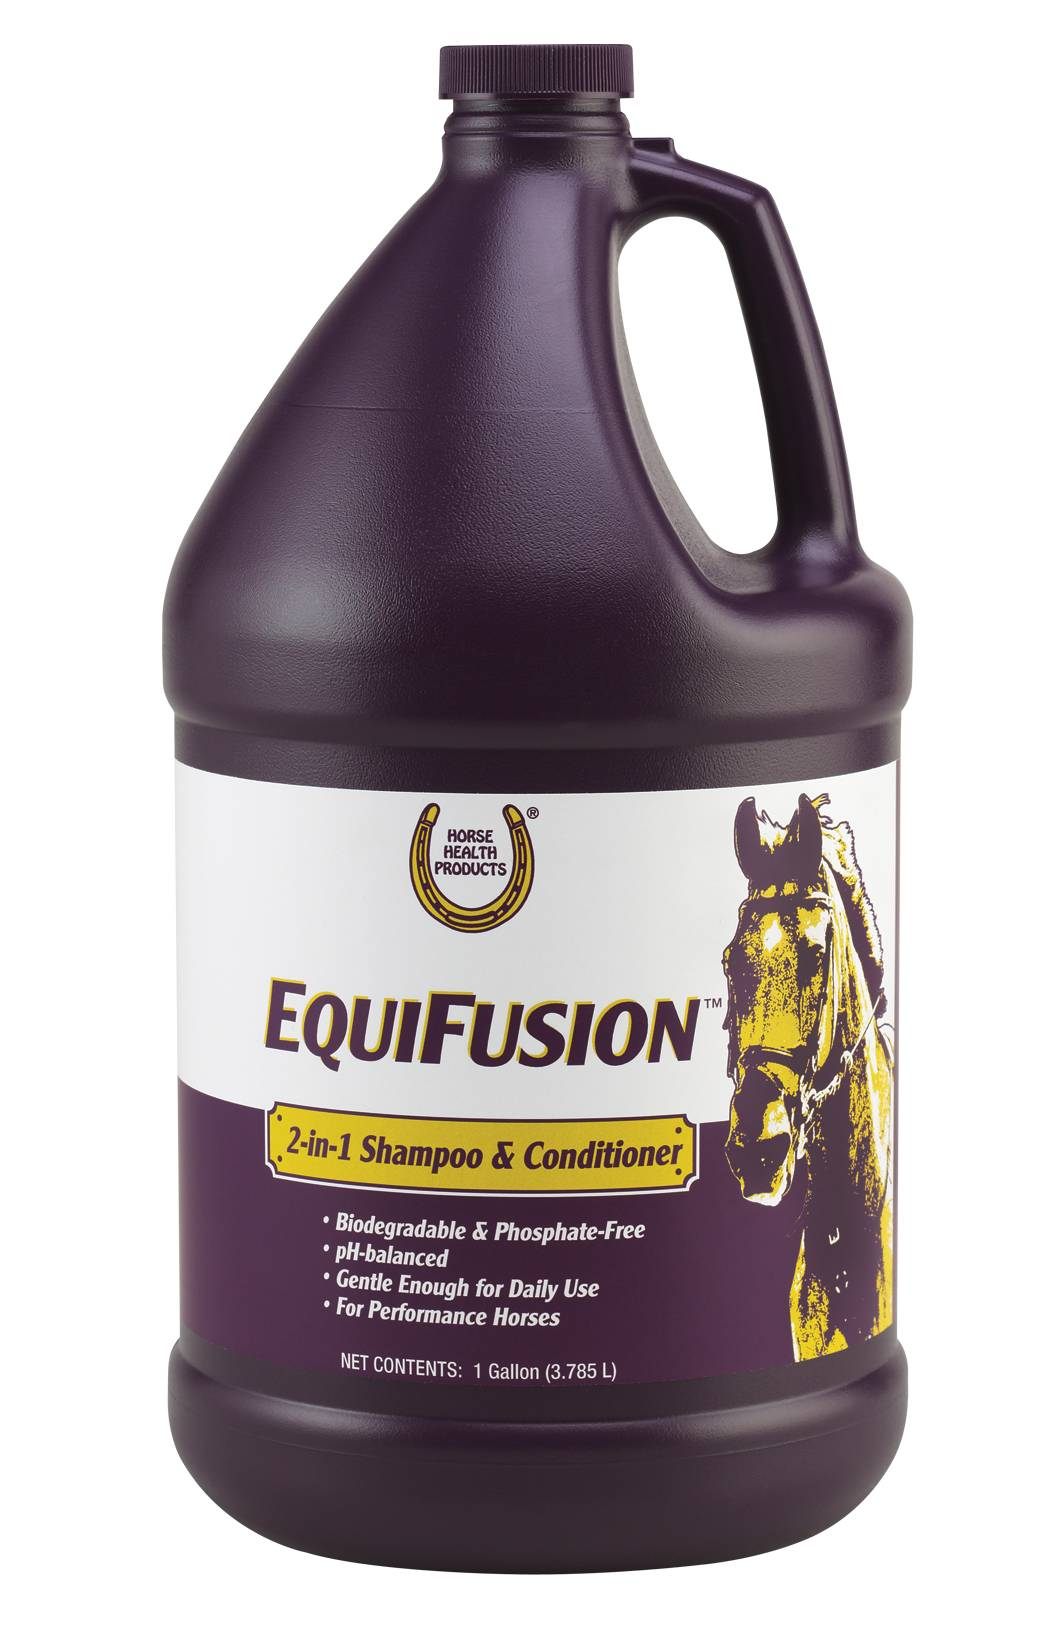 Horse Health Equifusion 2-in-1 Shampoo/Conditioner